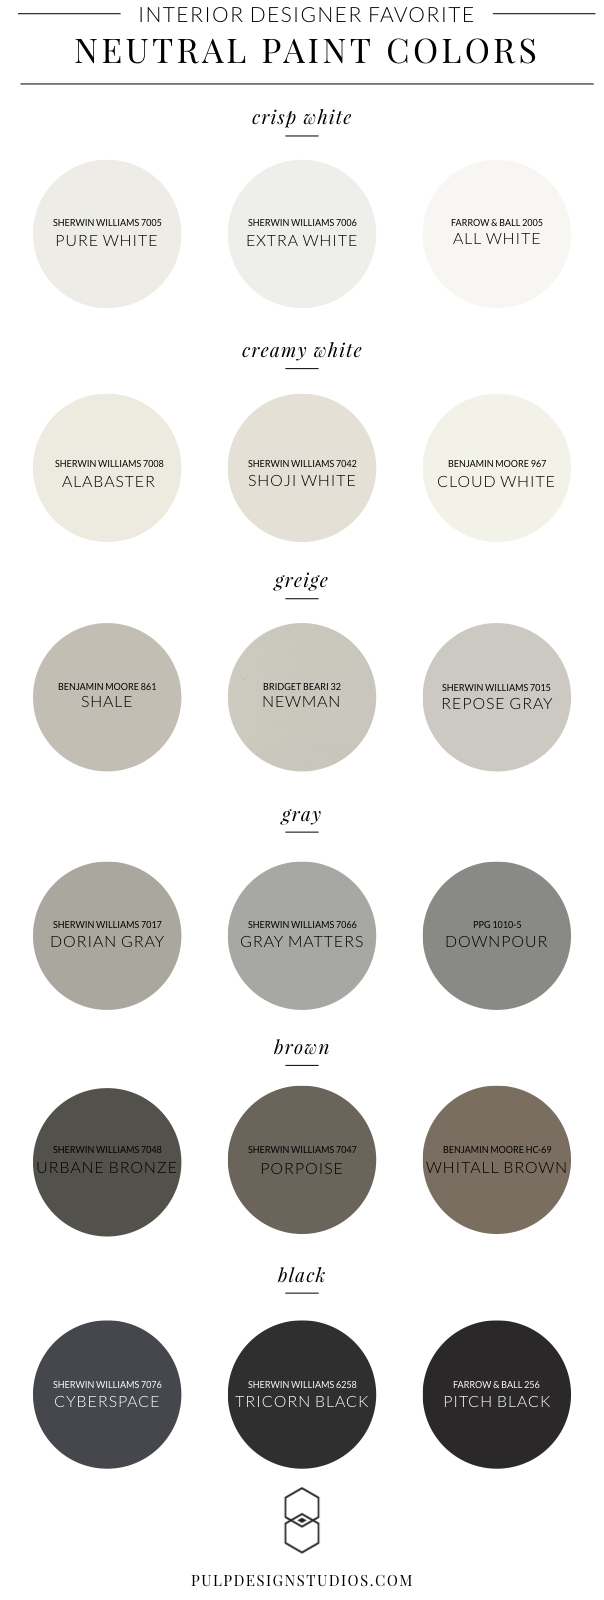 Best Neutral Paint Colors - Interior Design.001